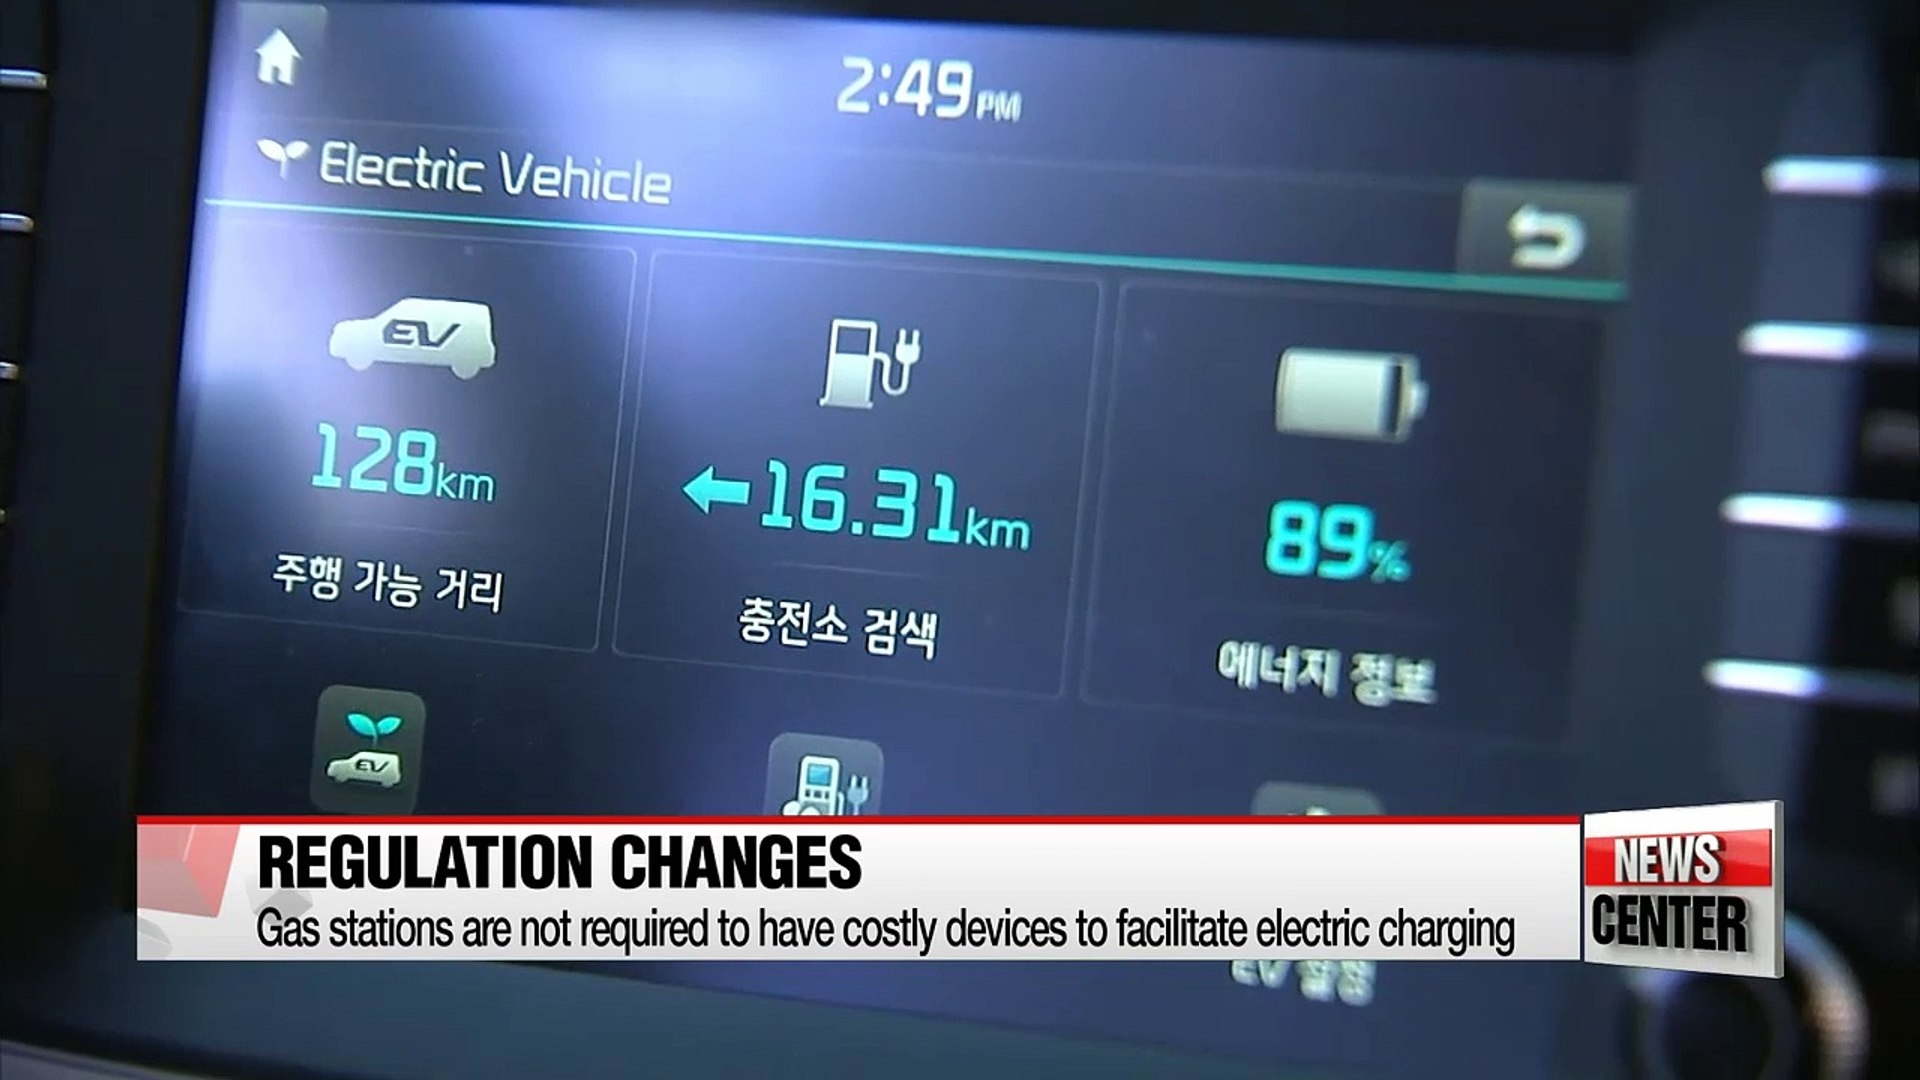 Less regulations for installing charging stations at gas stations